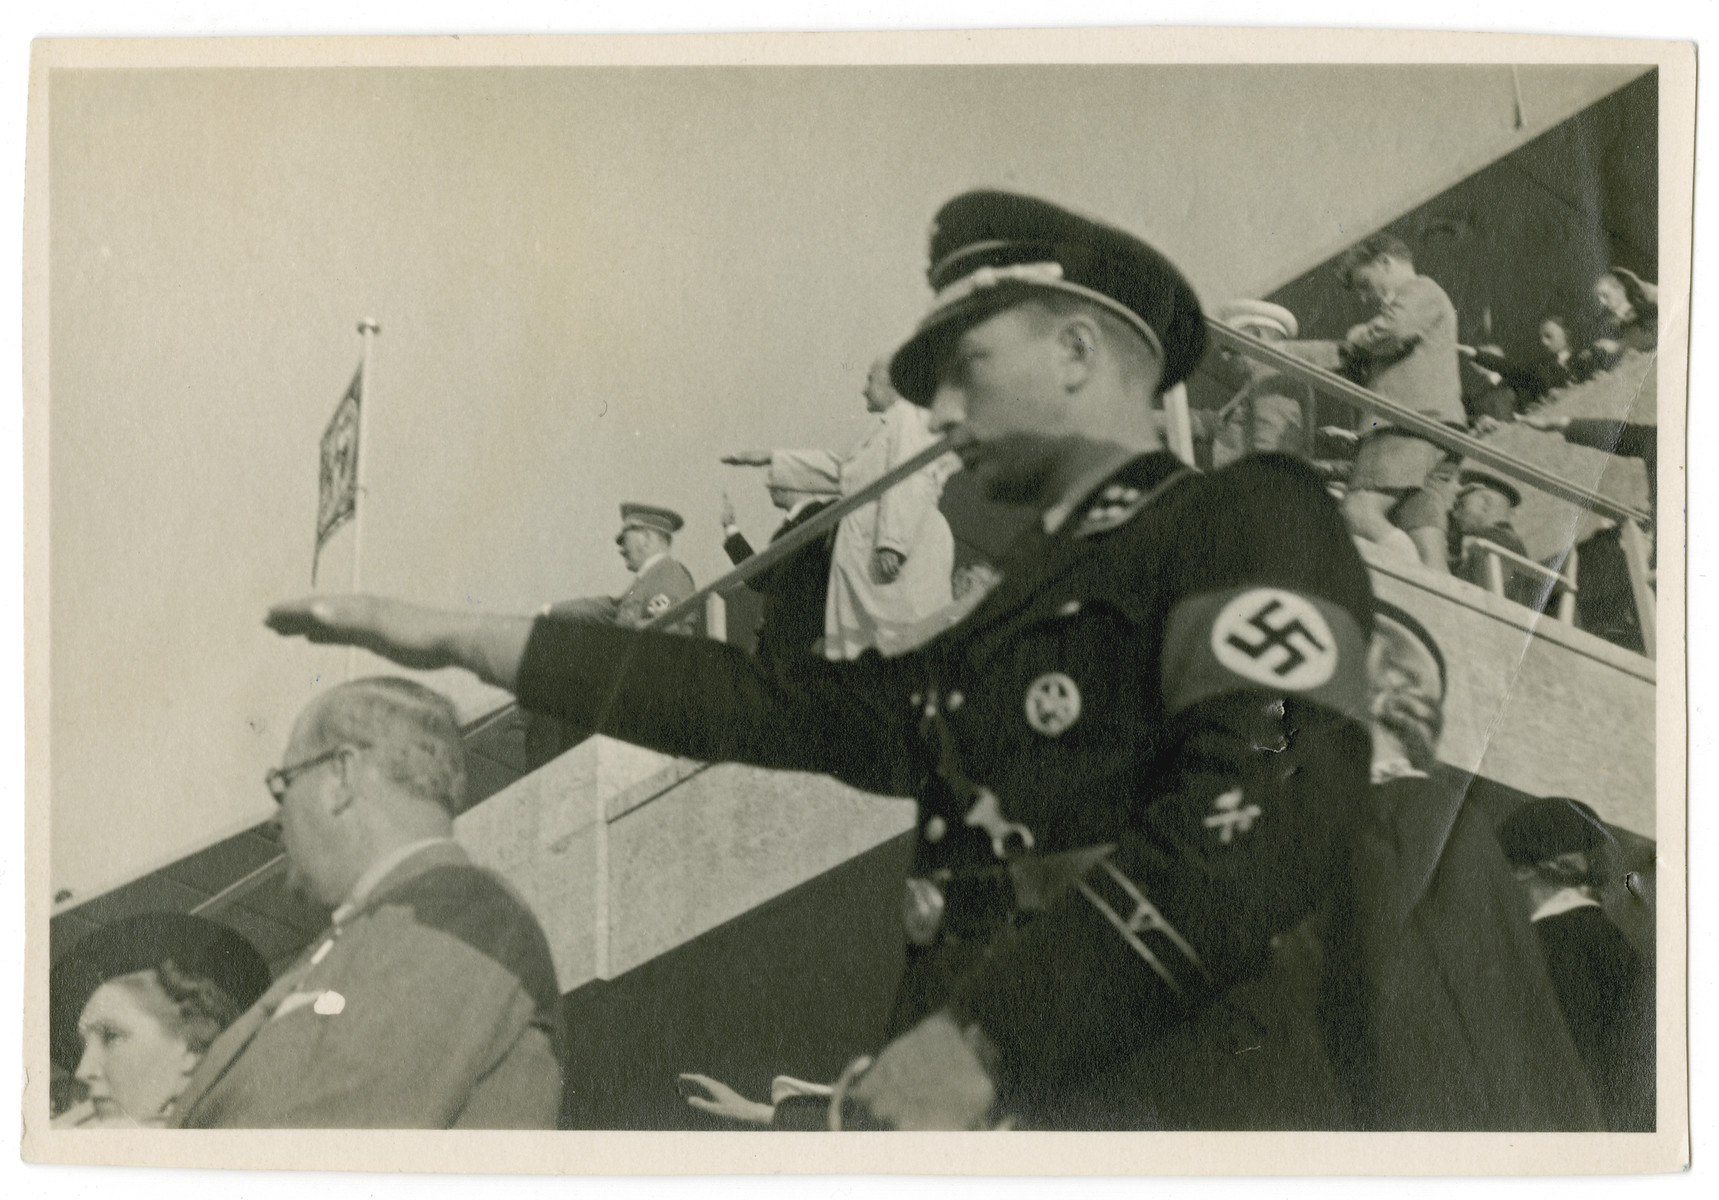 An SS man gives the Nazi salute at the start of the Berlin Olympics.  The saluting SS-man has been identified as SS-Sturmbannführer Hermnann Fegelein